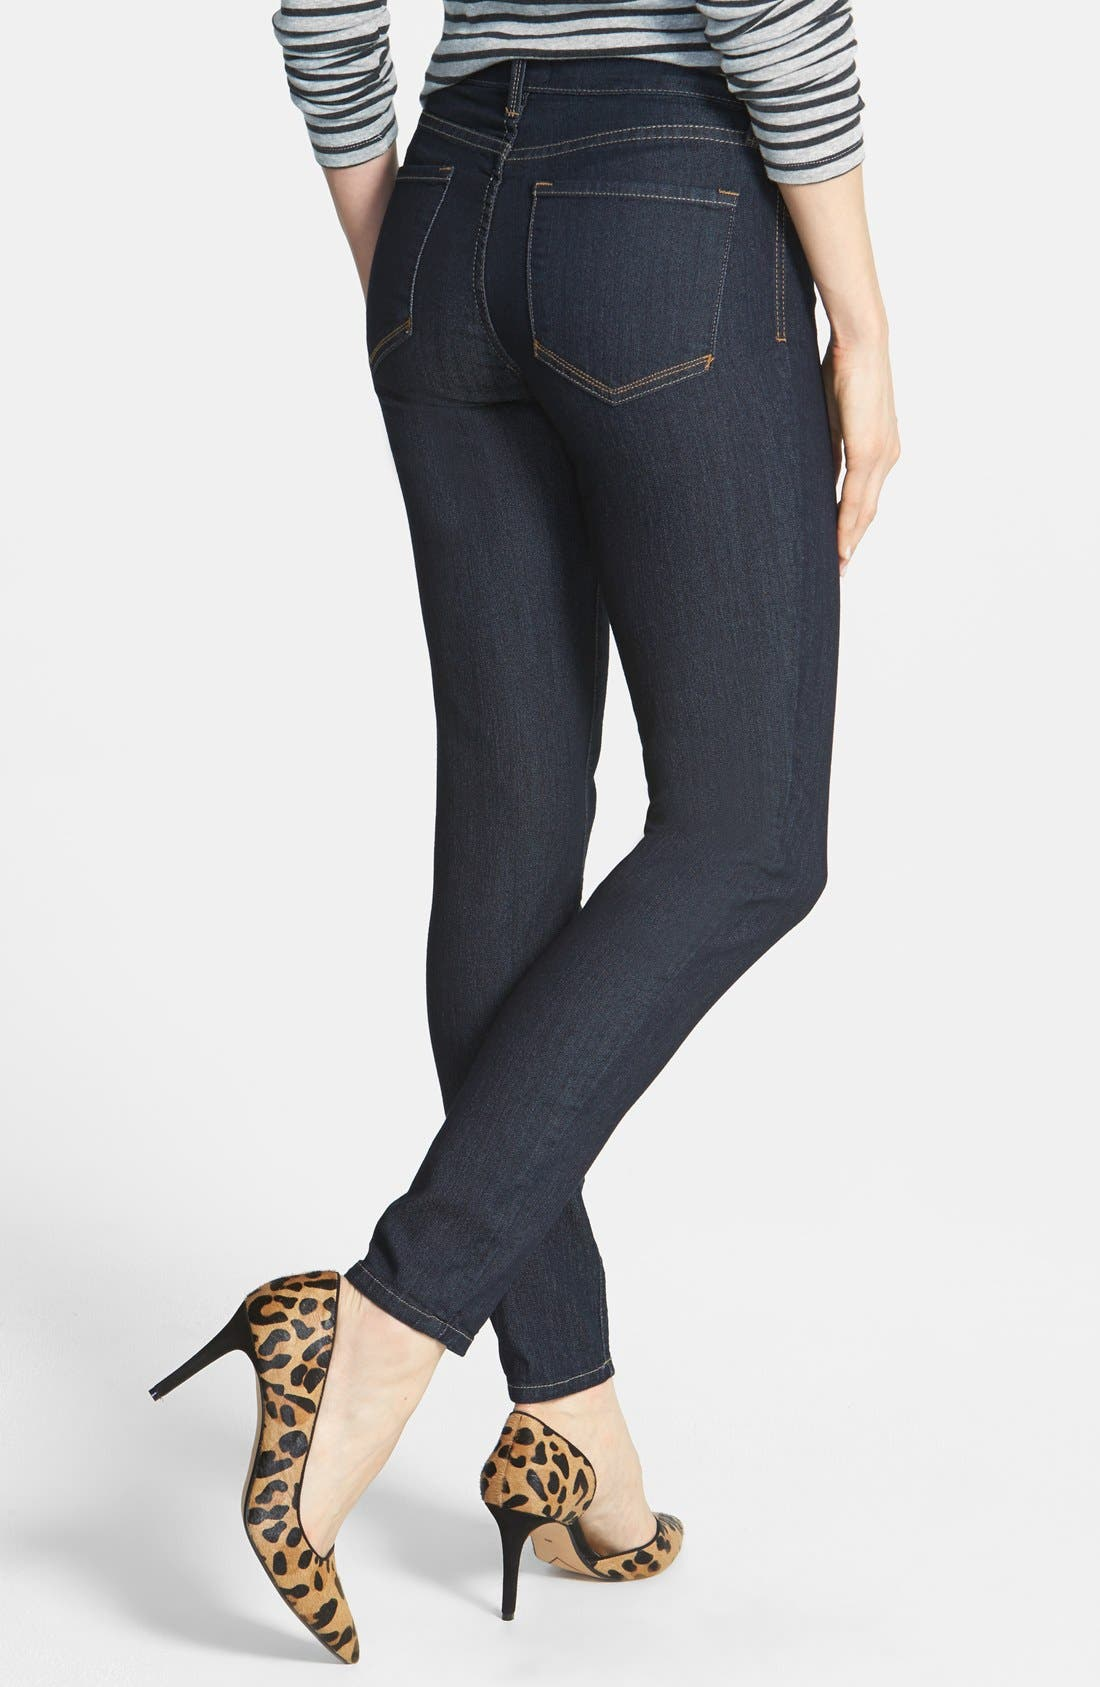 Alternate Image 2  - NYDJ 'Ami' Stretch Skinny Jeans (Dark Enzyme) (Petite)